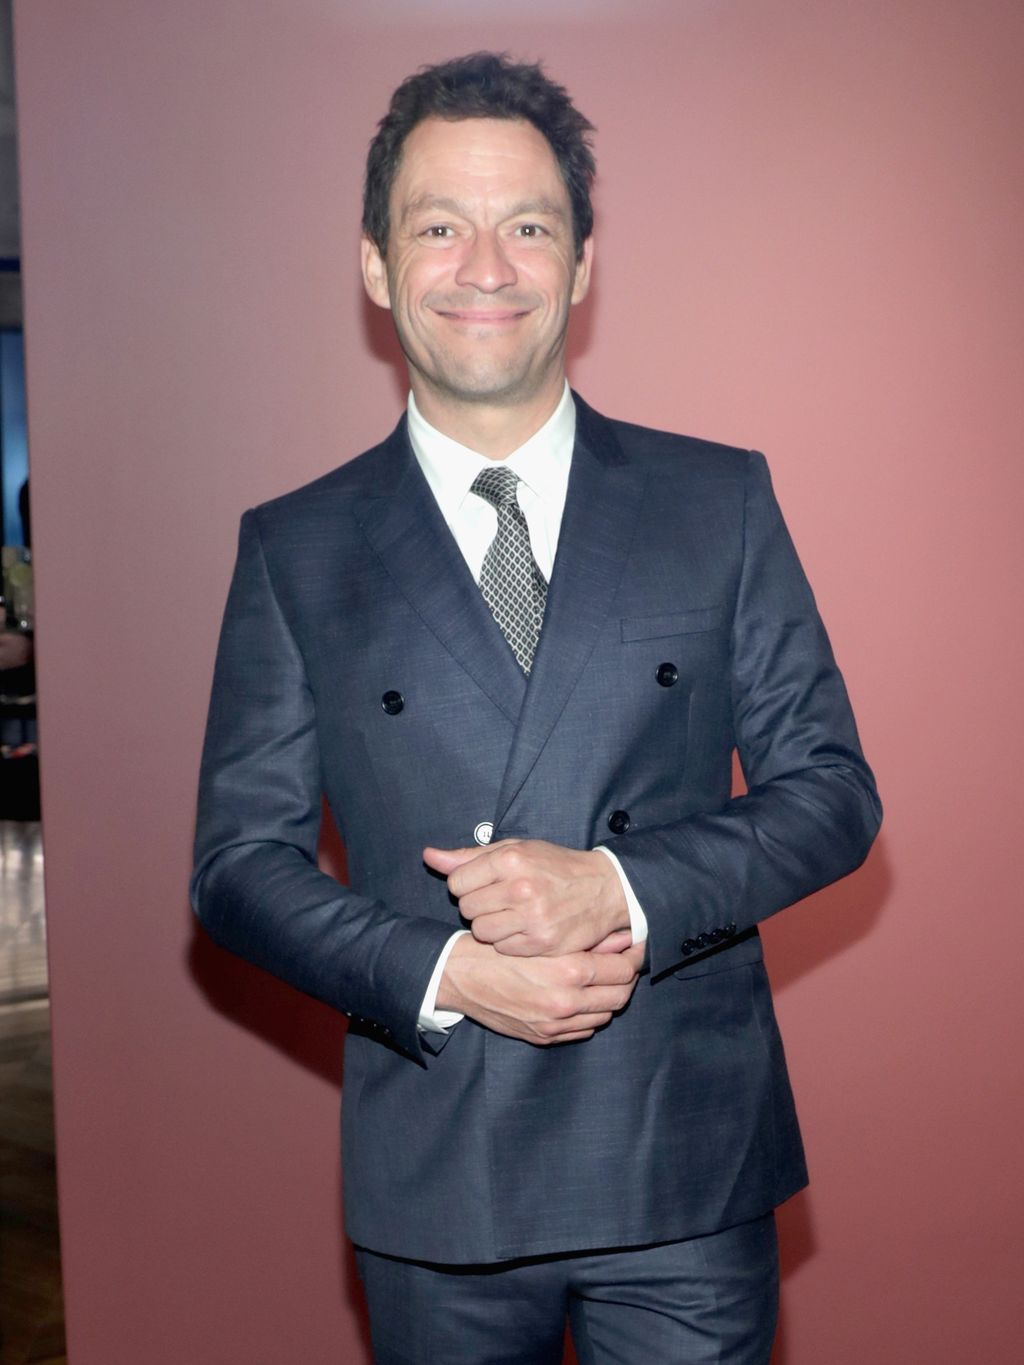 NEW YORK, NY - NOVEMBER 14:  Actor Dominic West attends the celebration of 'The Tale of Thomas Burberry' with Sienna Miller and Dominic West at Burberry Soho on November 14, 2016 in New York City.  (Photo by Cindy Ord/Getty Images for Burberry)